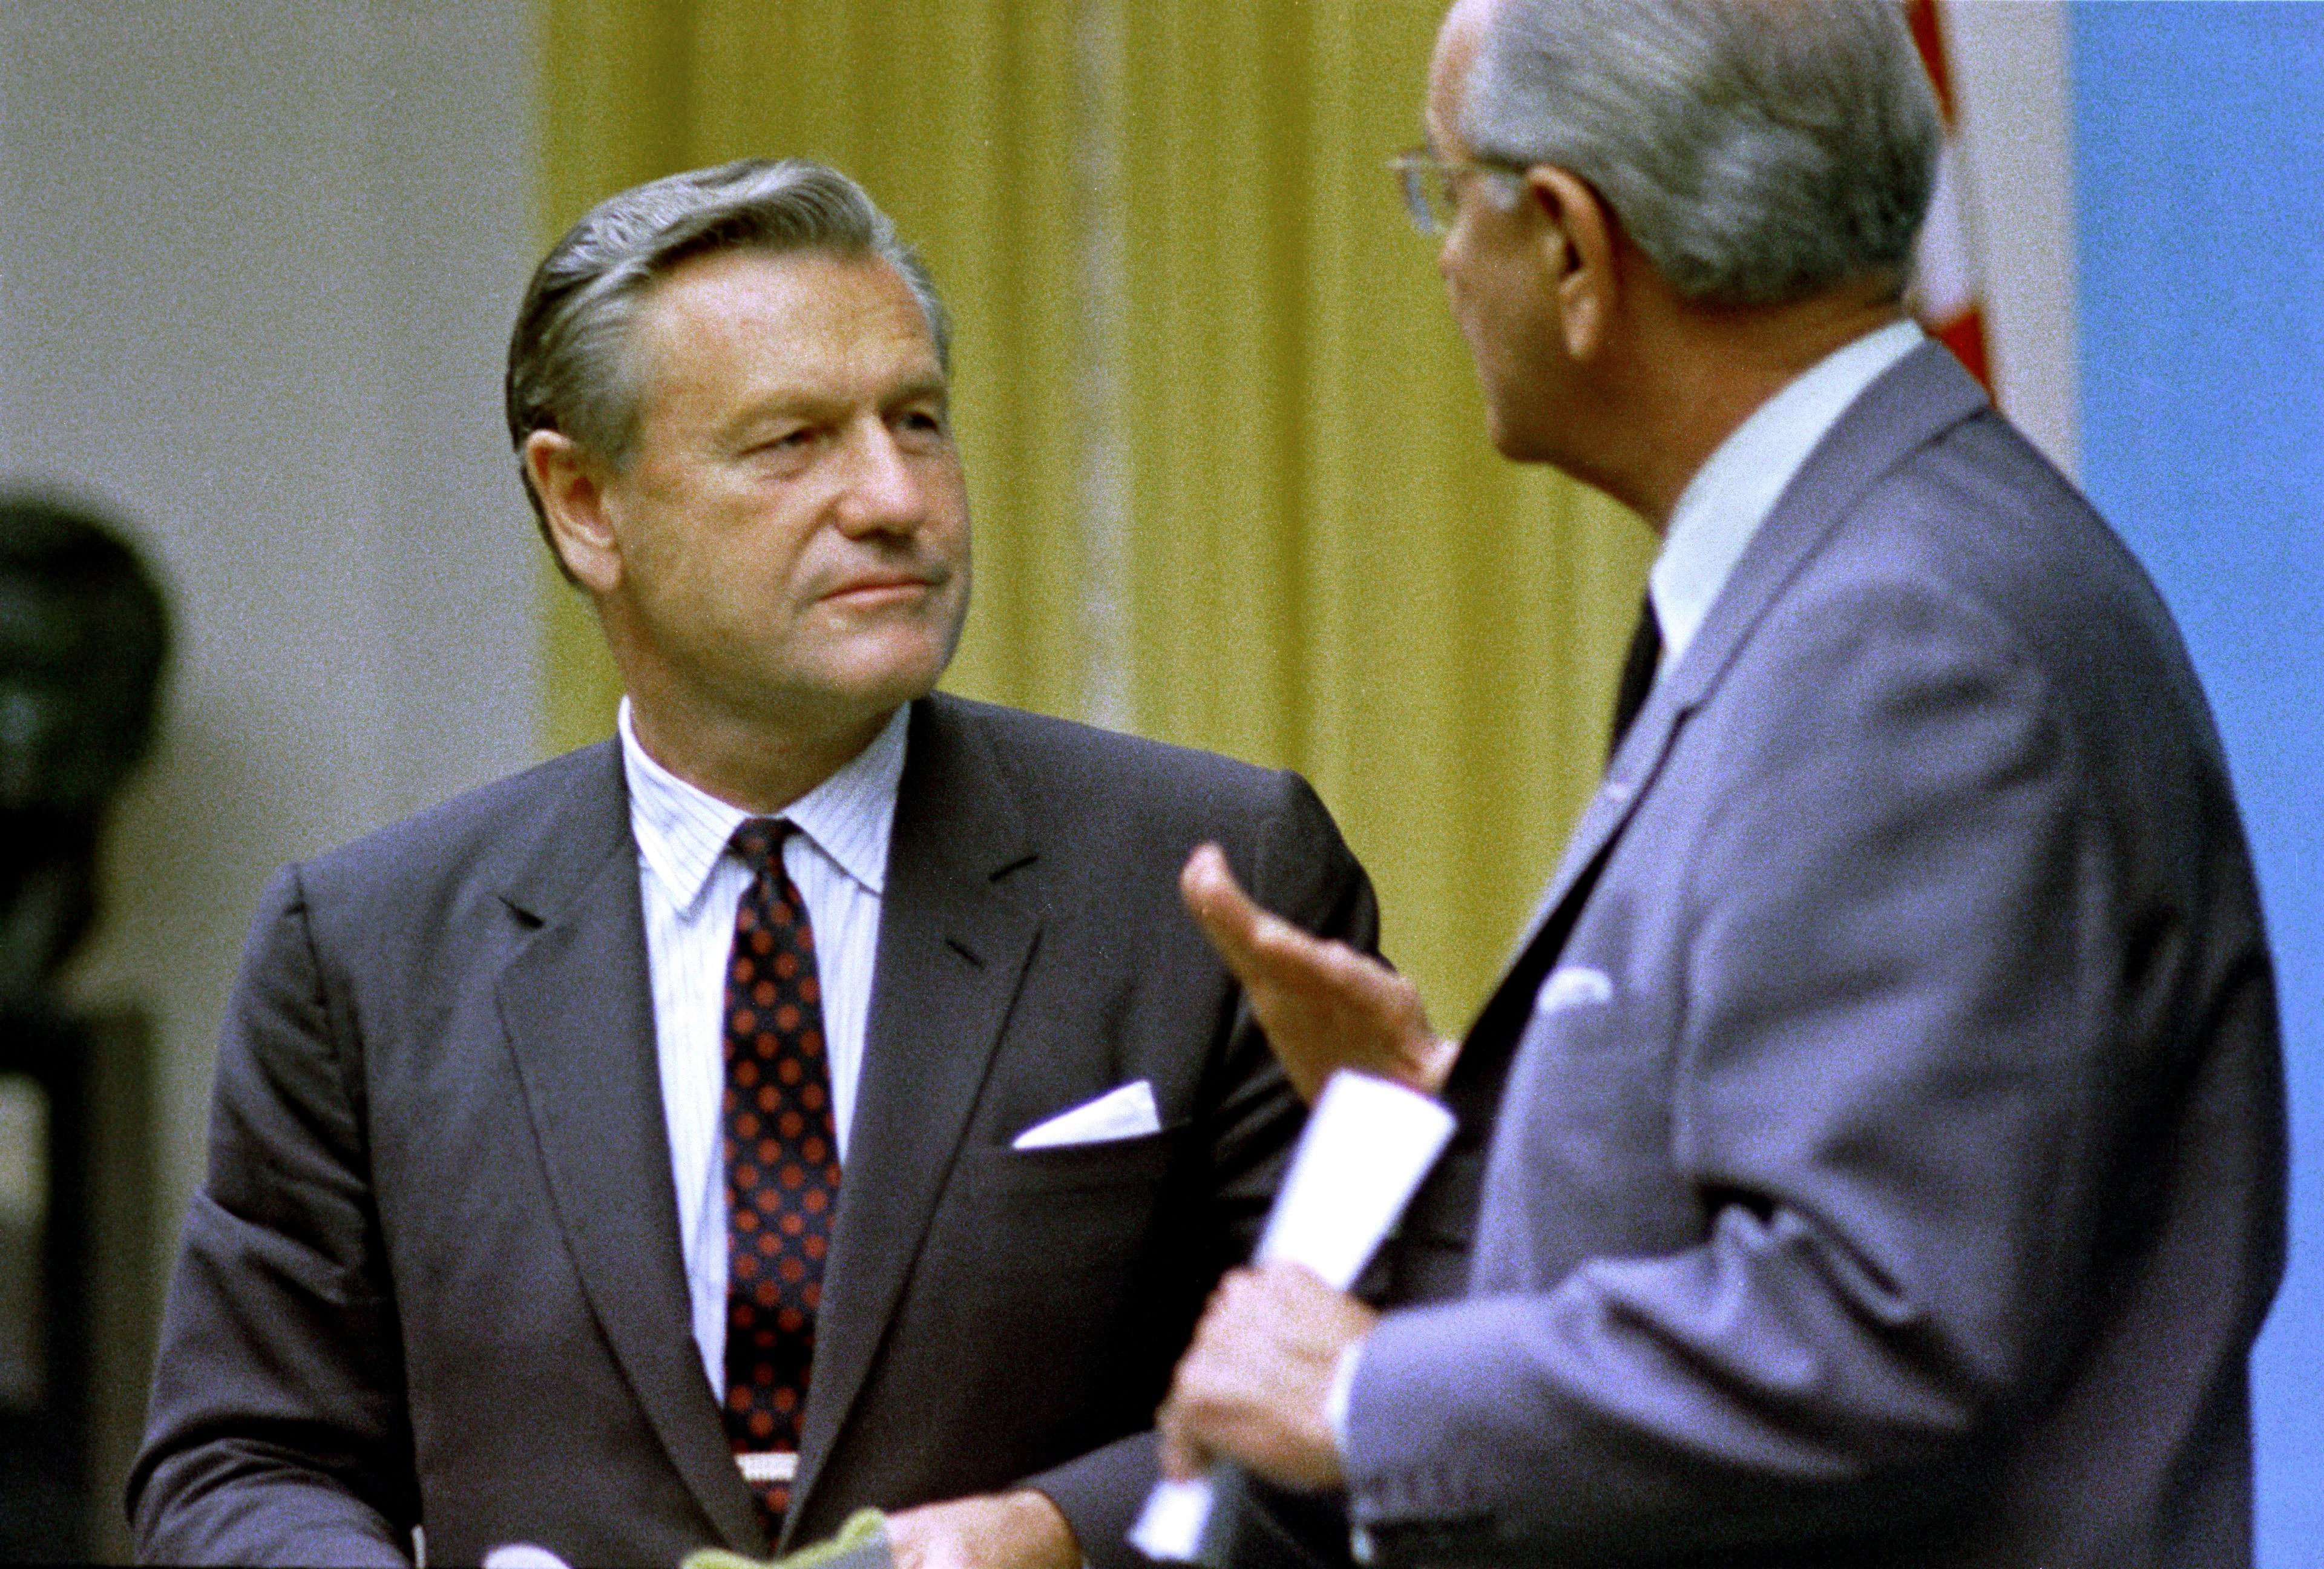 'Rockefeller Republicans,' sharing the more moderate views of Gov. Nelson A. Rockefeller, pictured in a 1968 photo with then-President Lyndon B. Johnson, are scarce these days.